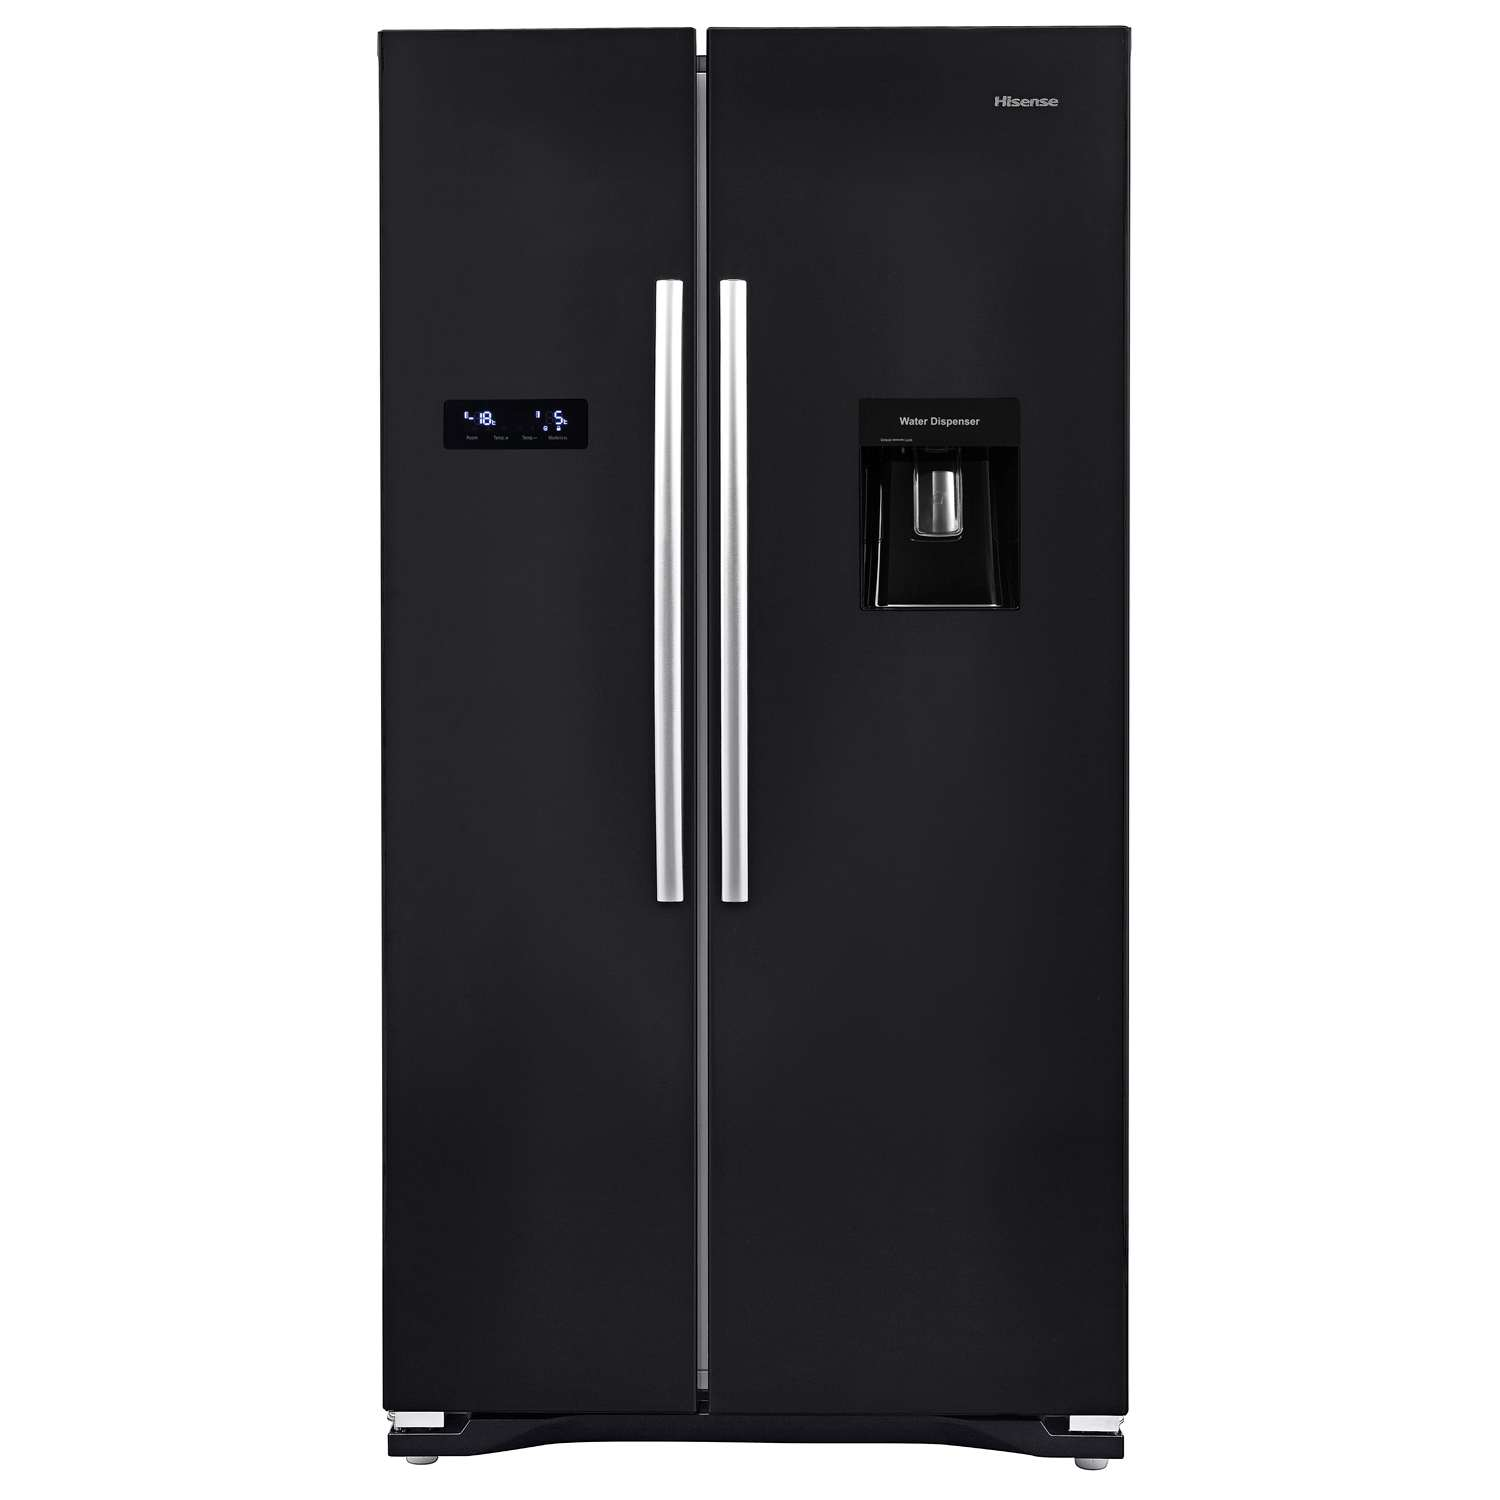 hisense rs723n4wb1 a rated american frost free 6 shelves fridge freezer black 6943619738374 ebay. Black Bedroom Furniture Sets. Home Design Ideas